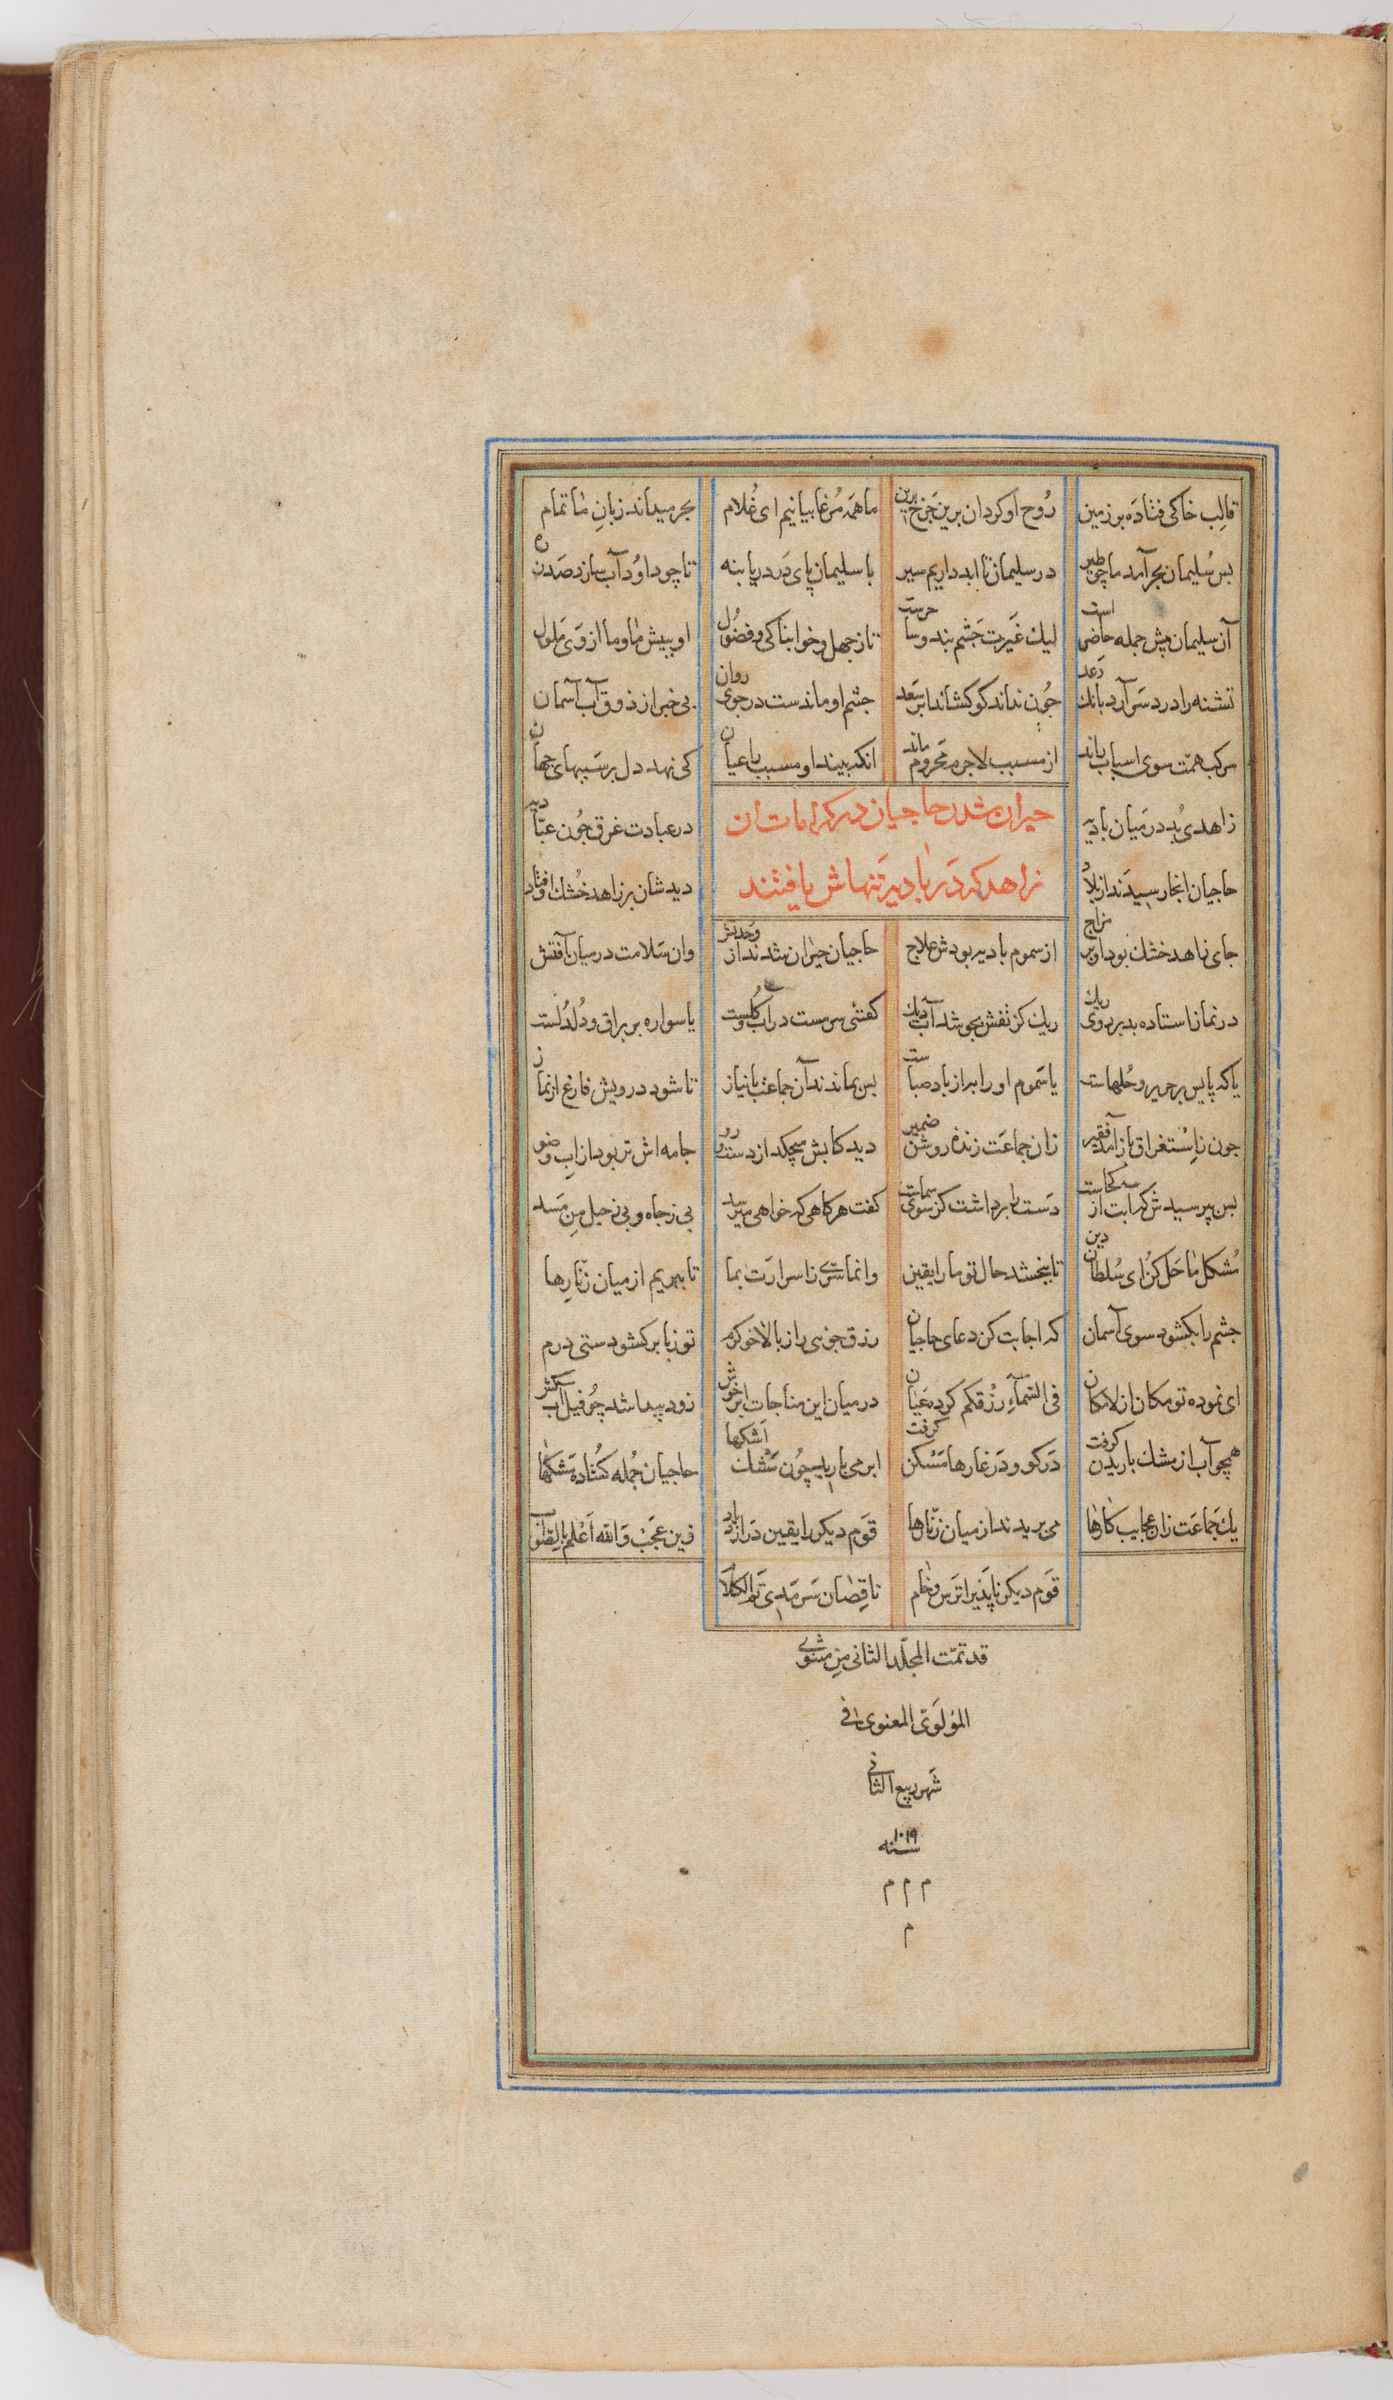 Colophon Of The Second Section (Colophon Recto; Text Verso Of Folio 89), Folio From A Manuscript Of The Mathnavi Ma'navi By Maulana Jalal Al-Din Rumi